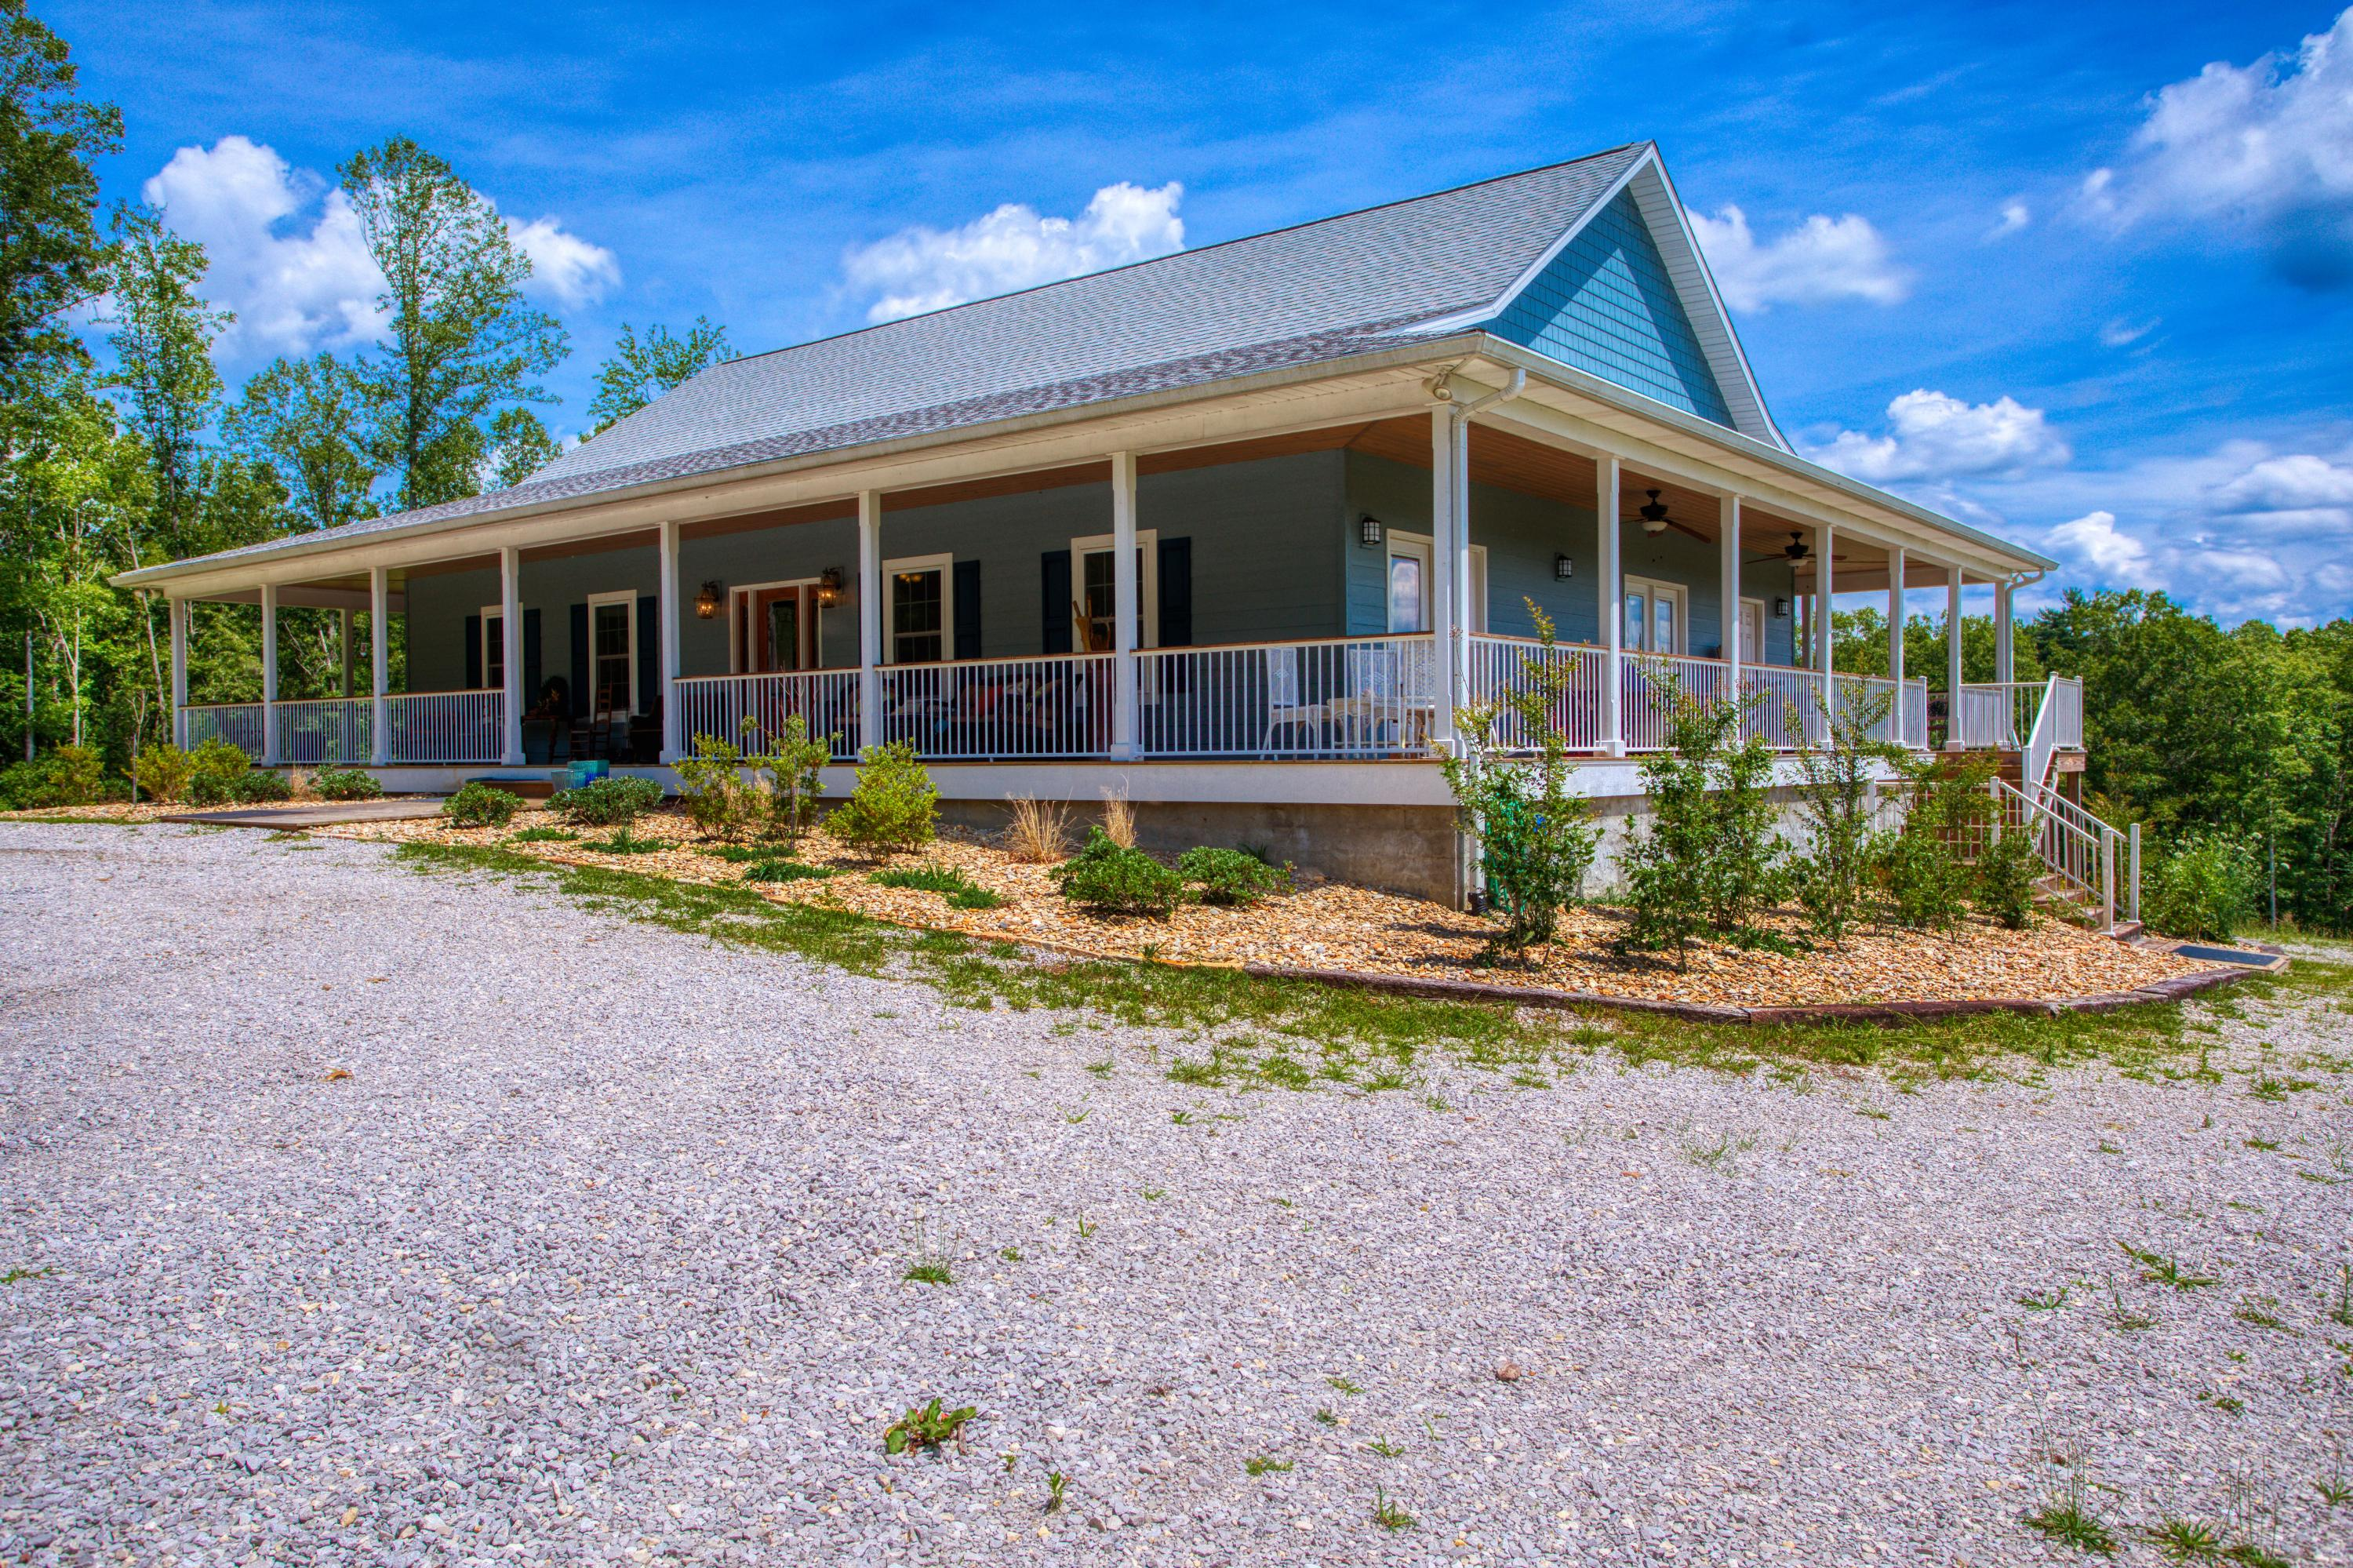 2900 Leatherwood Ford Rd- Jamestown- Tennessee 38556, 3 Bedrooms Bedrooms, ,3 BathroomsBathrooms,Single Family,For Sale,Leatherwood Ford,1085992